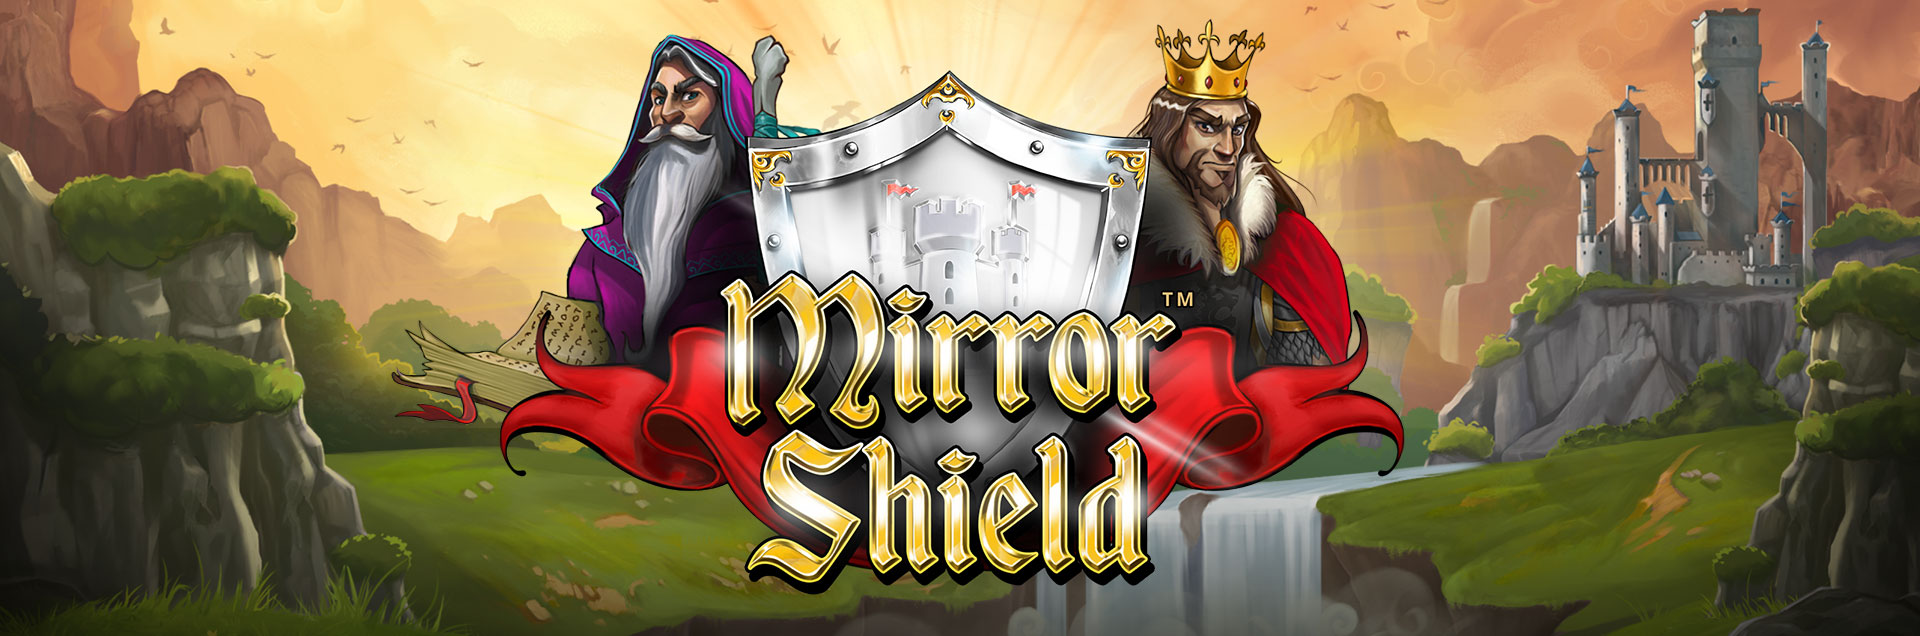 MirrorShield Image